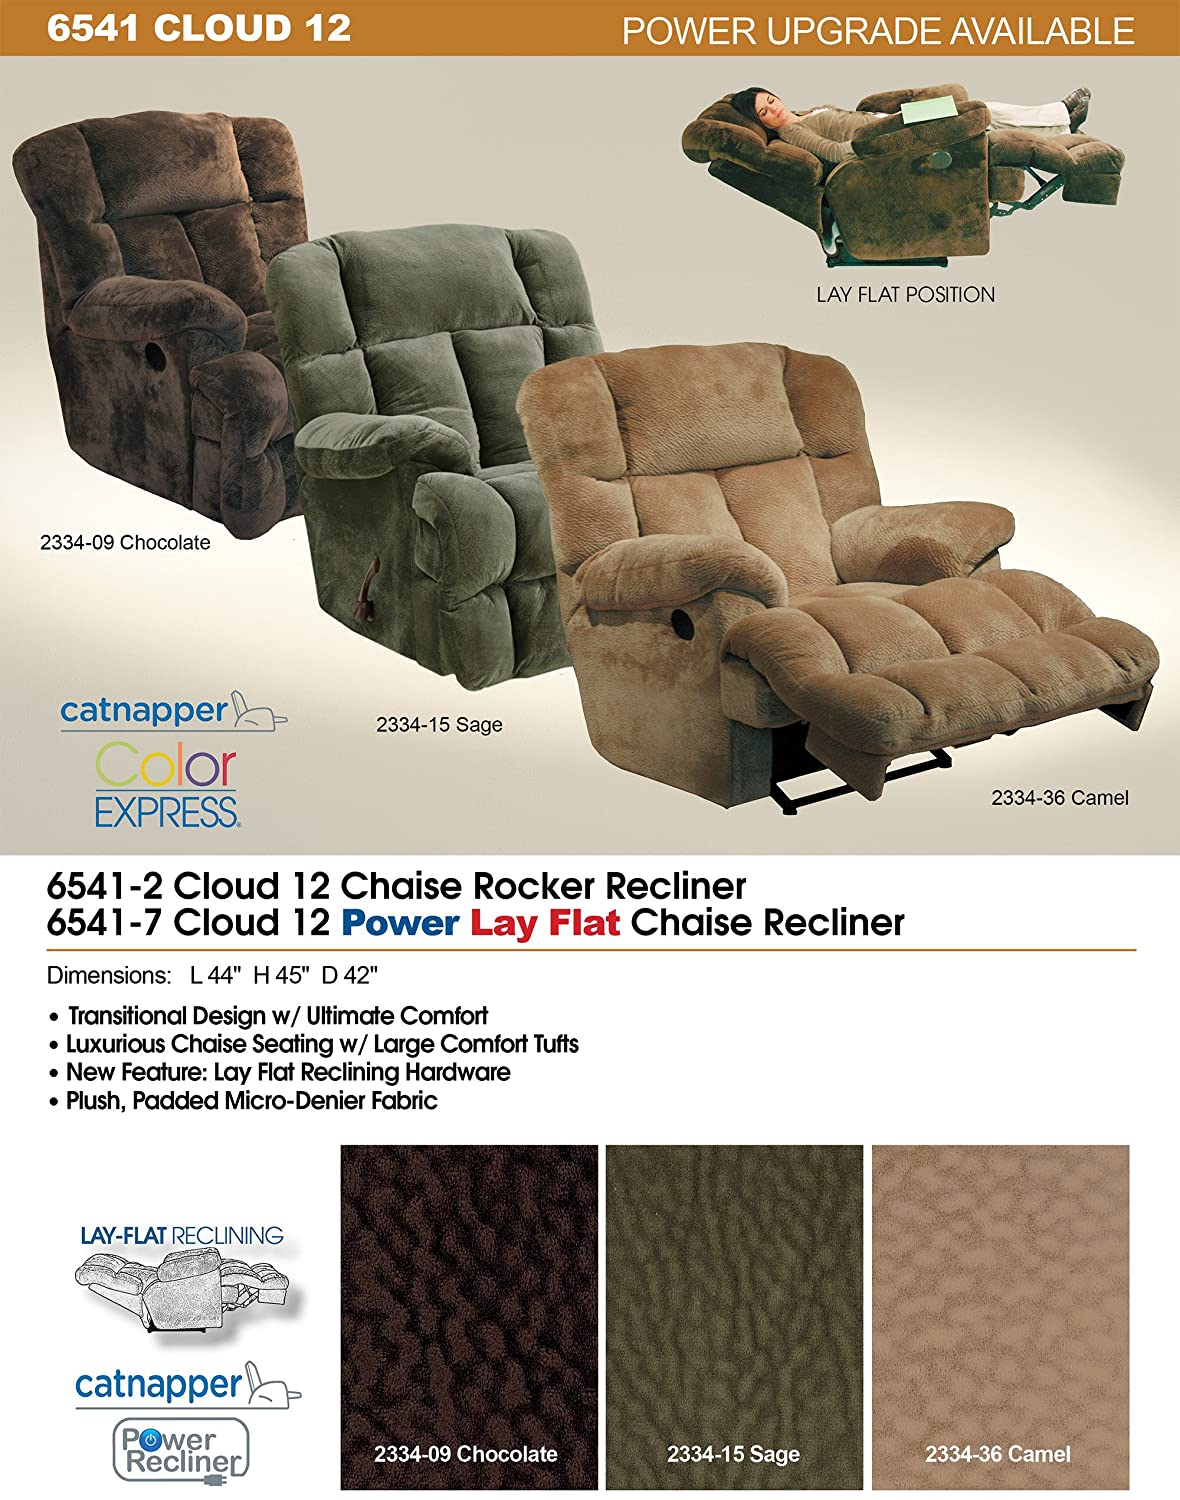 amazoncom catnapper cloud 12 power lay flat chaise recliner chair chocolate fabric kitchen u0026 dining - Catnapper Recliner